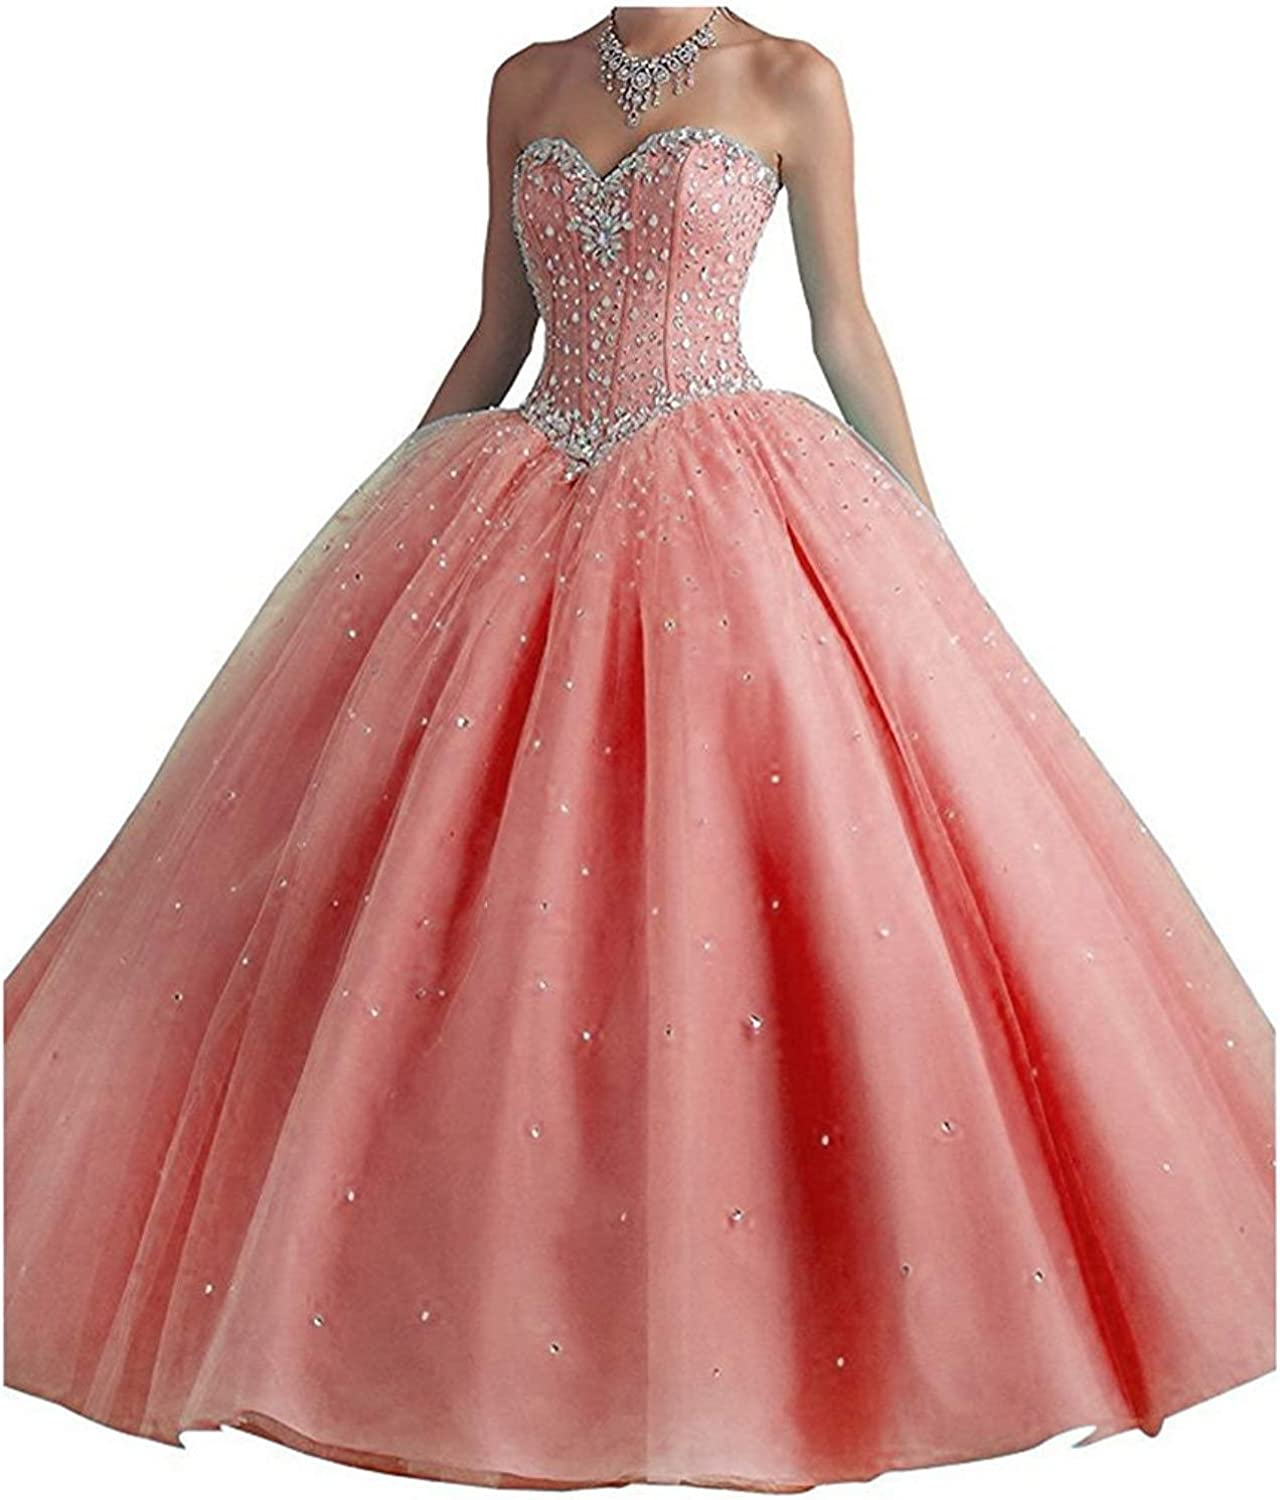 EverBeauty Womens Crystals Strapless Quinceanera Dress Long Sweetheart Tulle Sweet 16 Prom Ball Gown